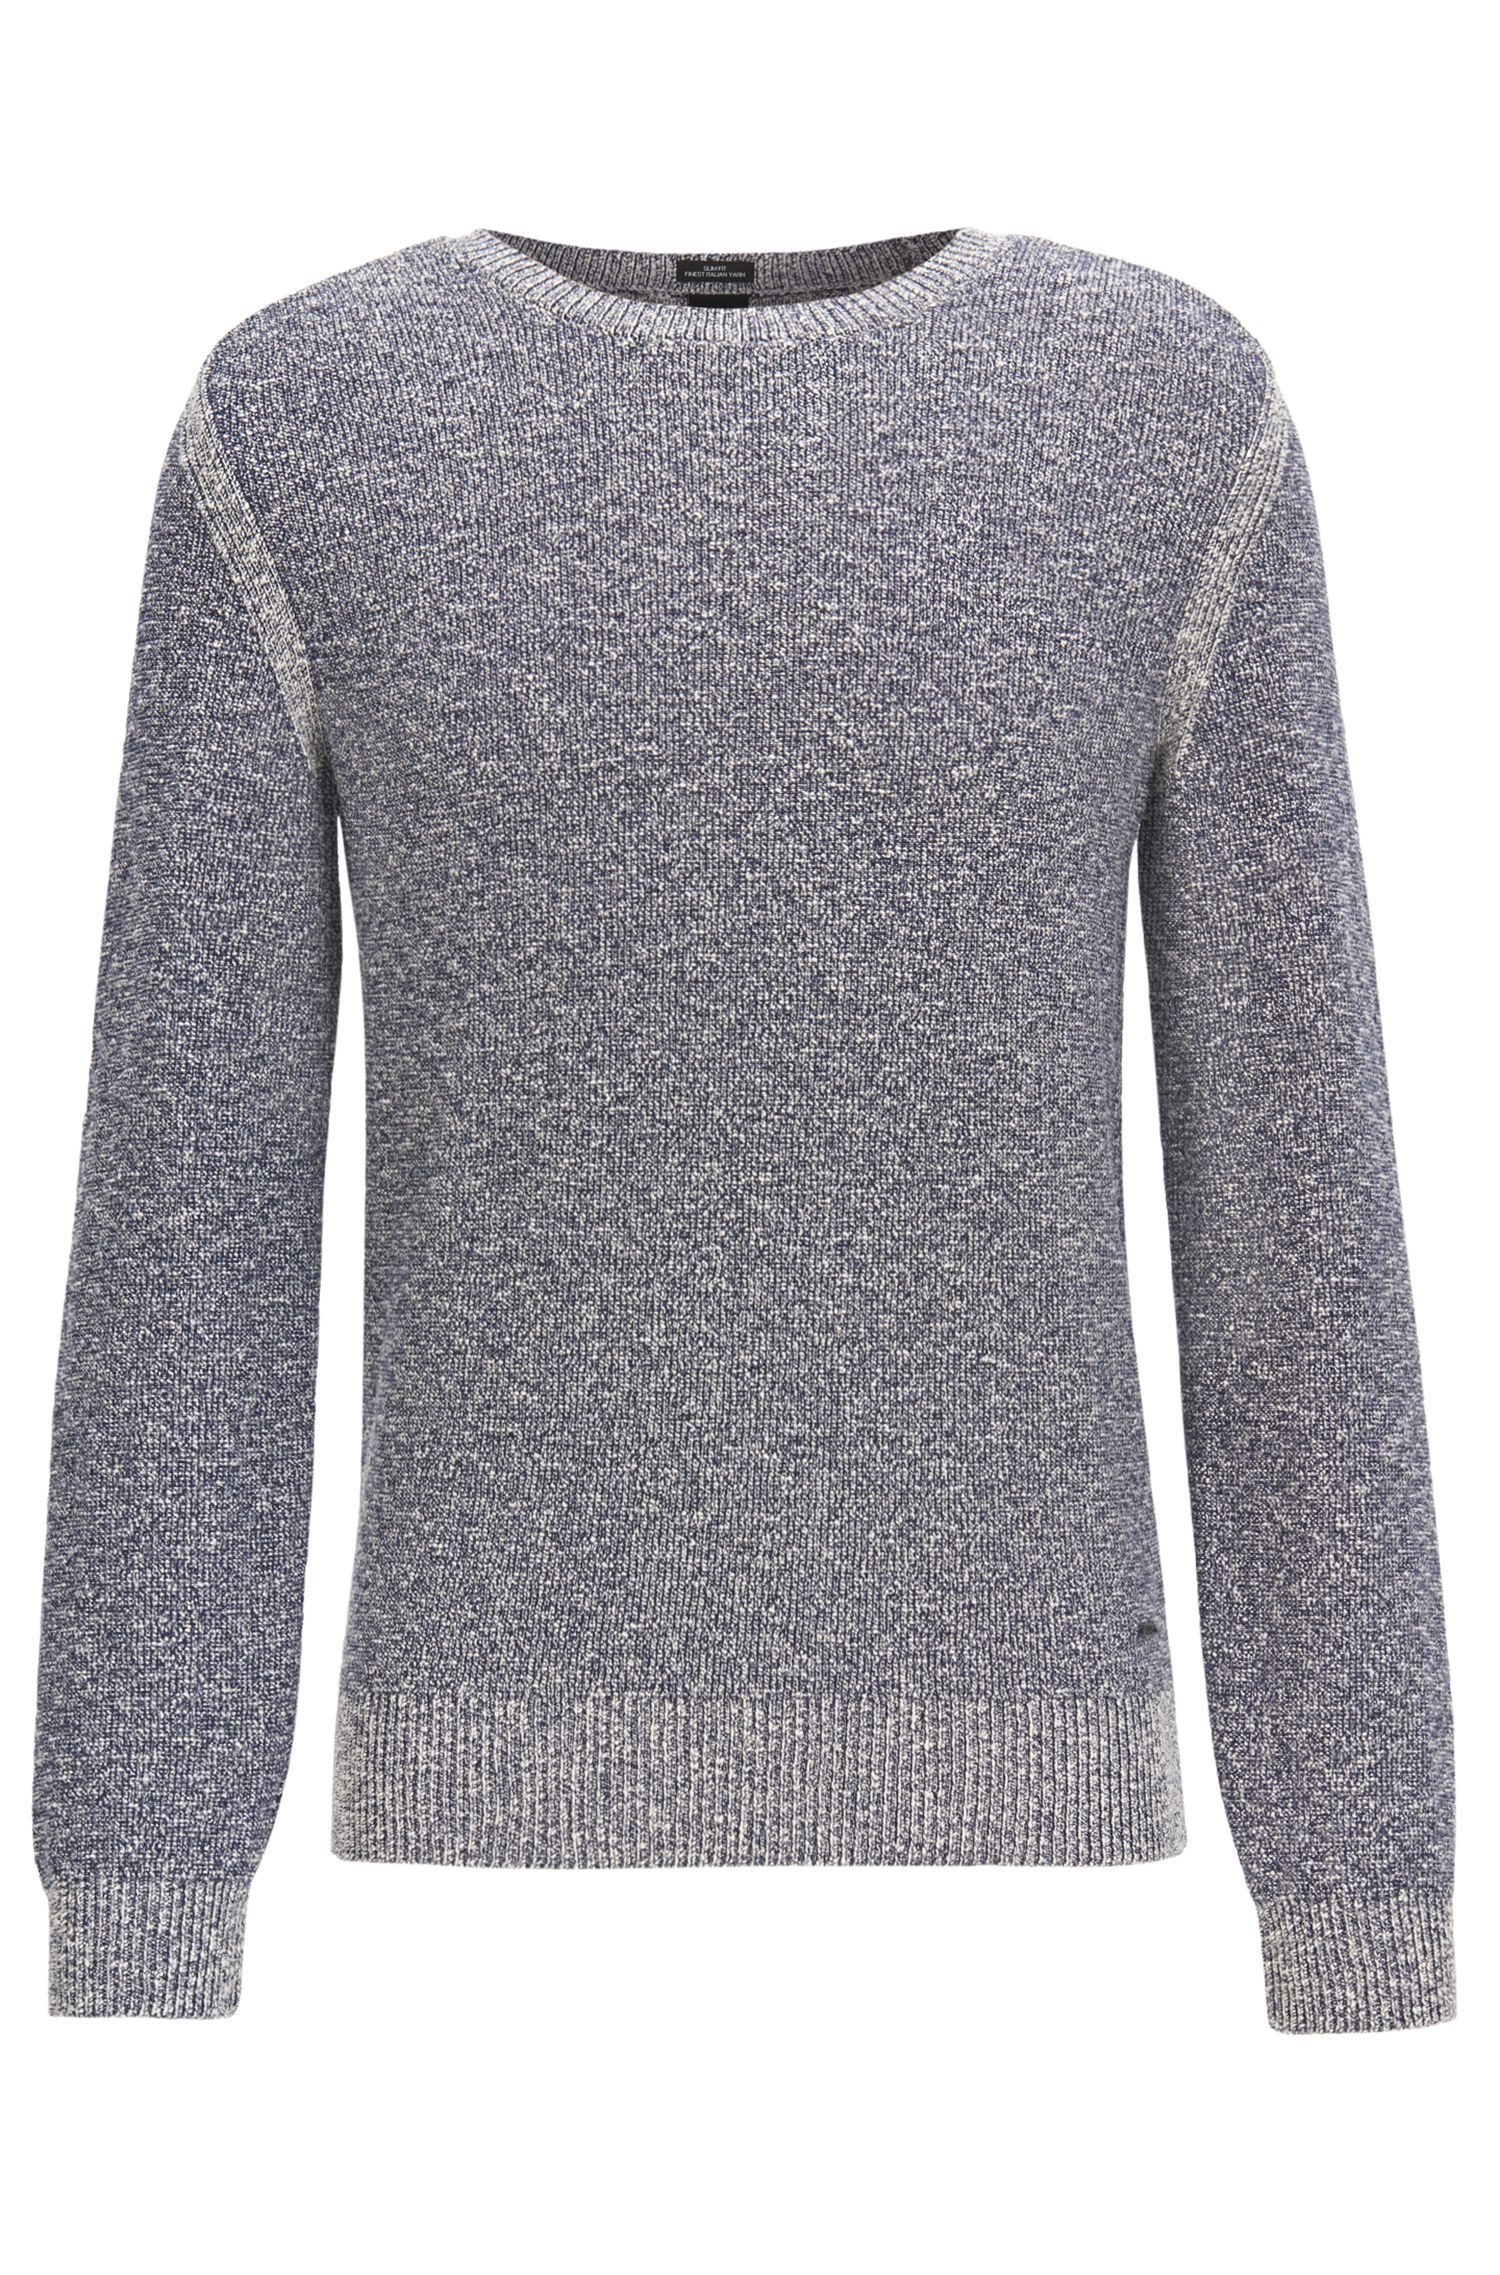 Mouliné cotton-blend sweater with shoulder detailing